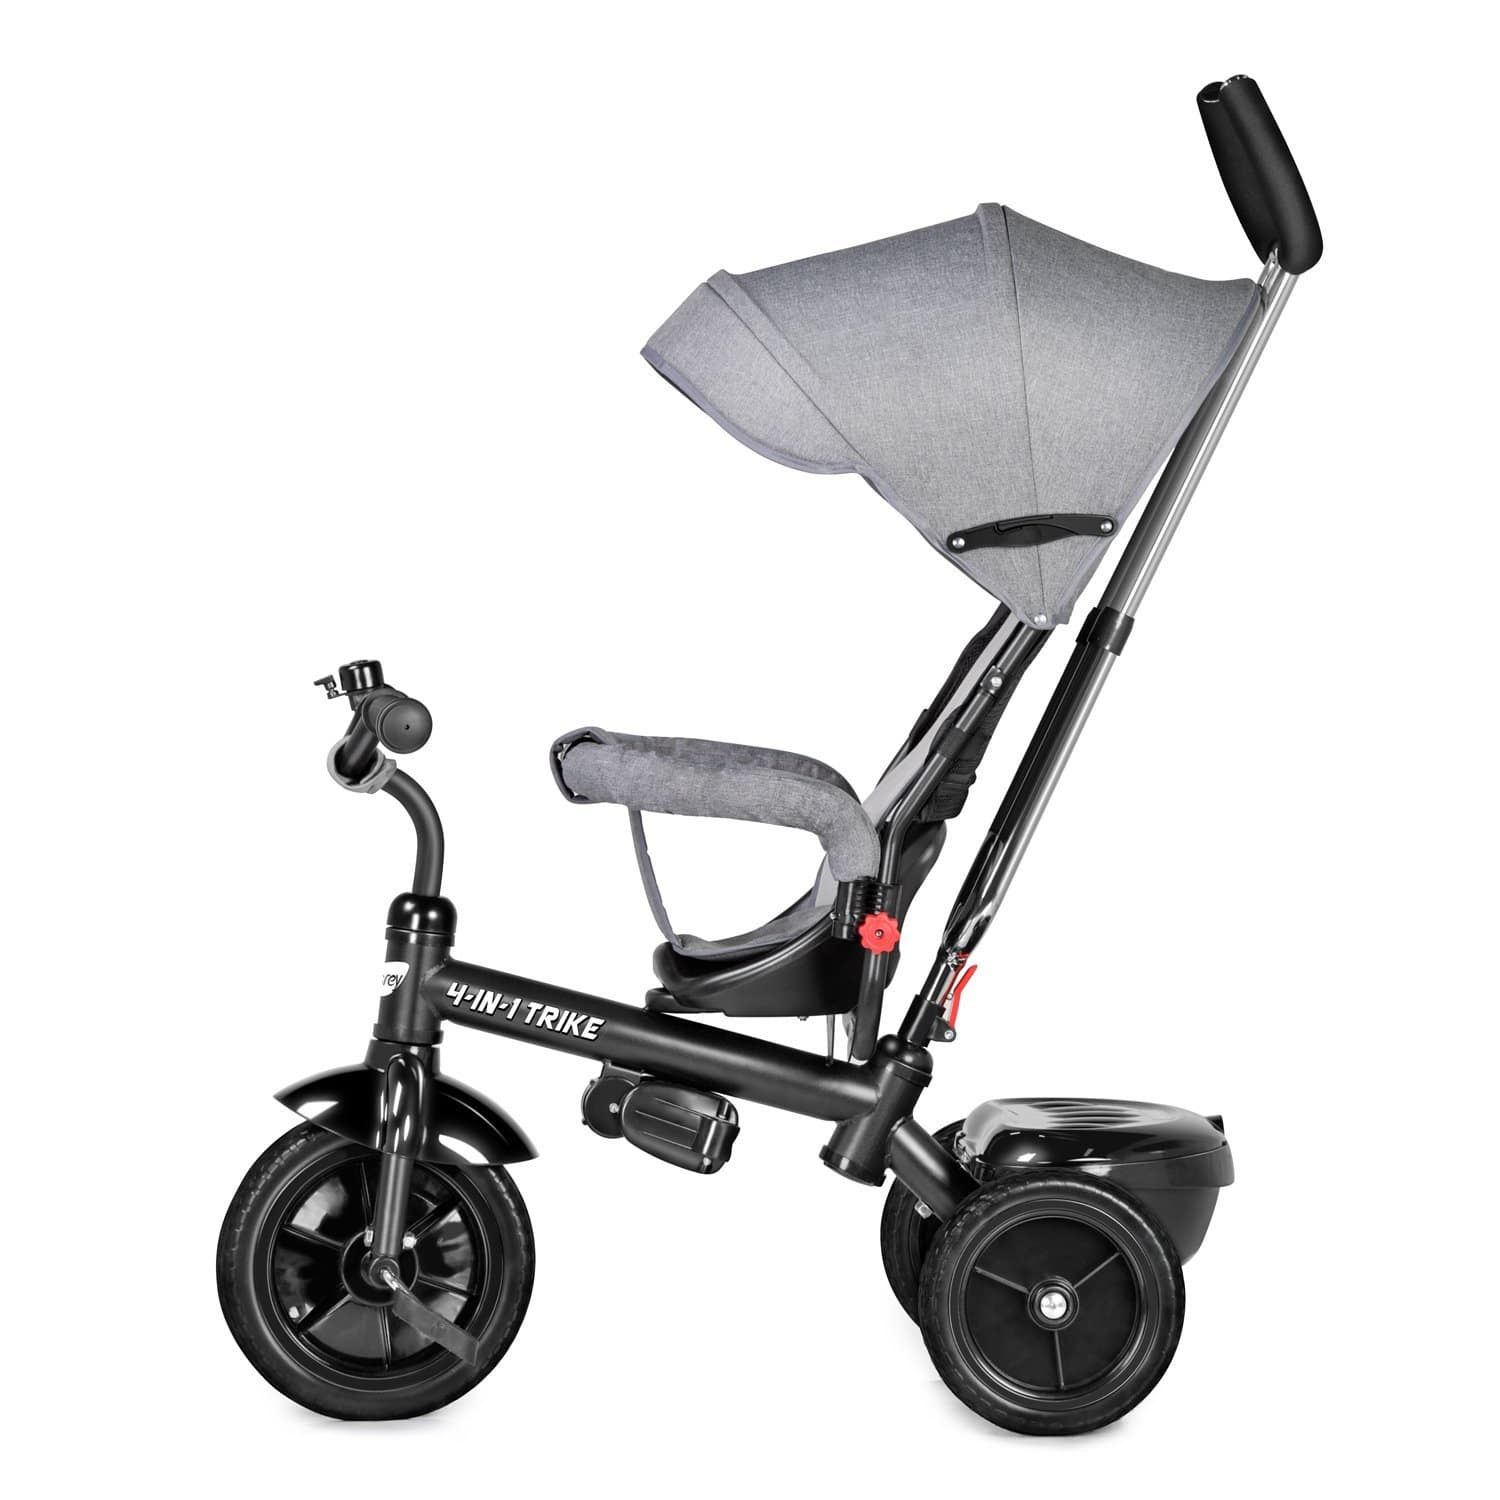 Besrey 4-in 1 Lightweight Convertible Kids' tricycle for $68.8 w/ free shipping on Amazon